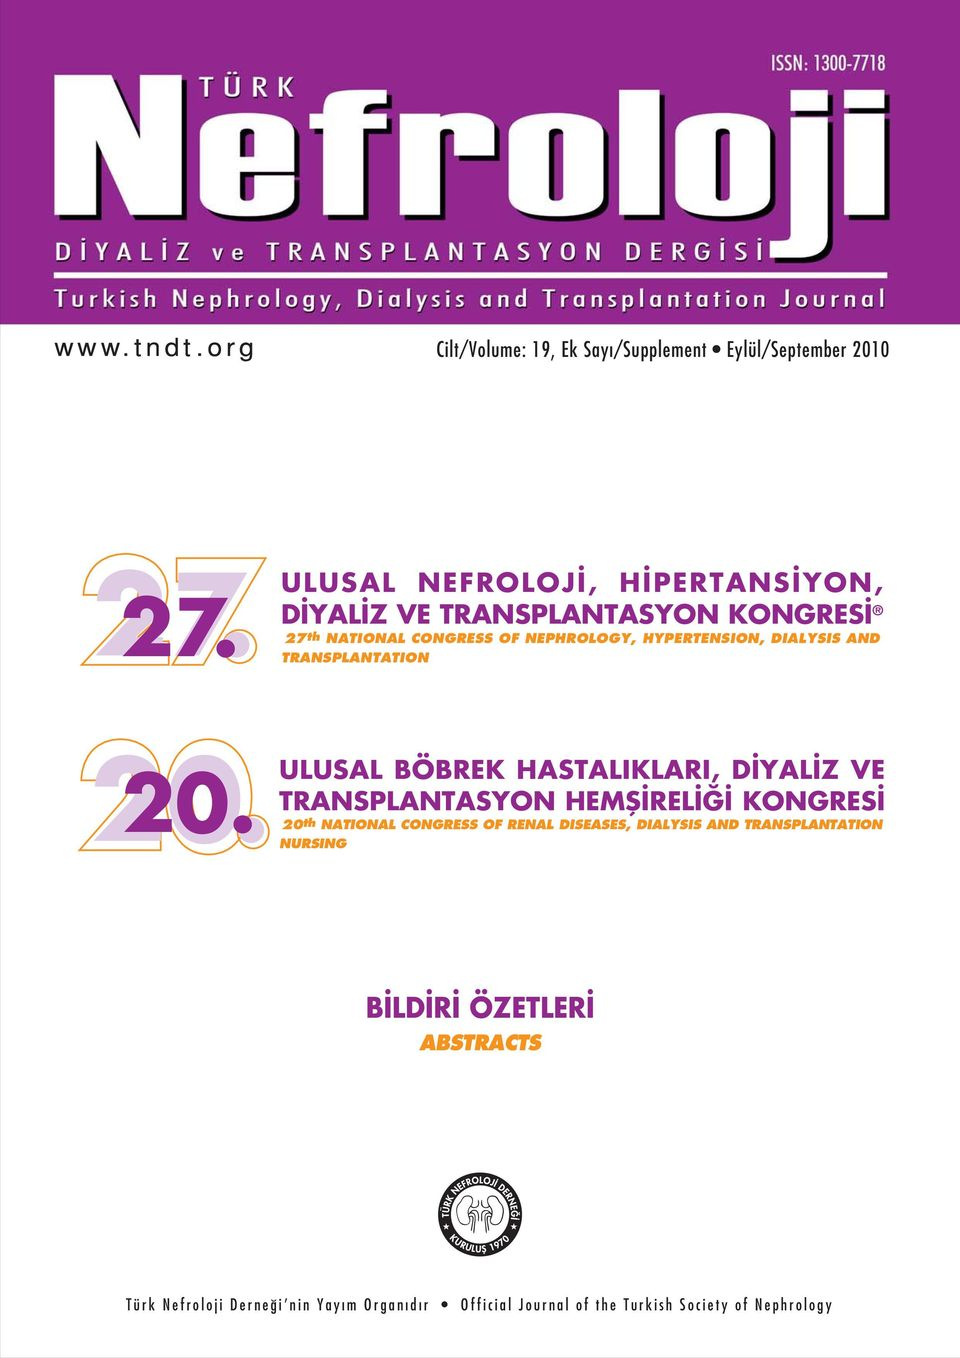 th NATIONAL CONGRESS OF NEPHROLOGY, HYPERTENSION, DIALYSIS AND TRANSPLANTATION 2.